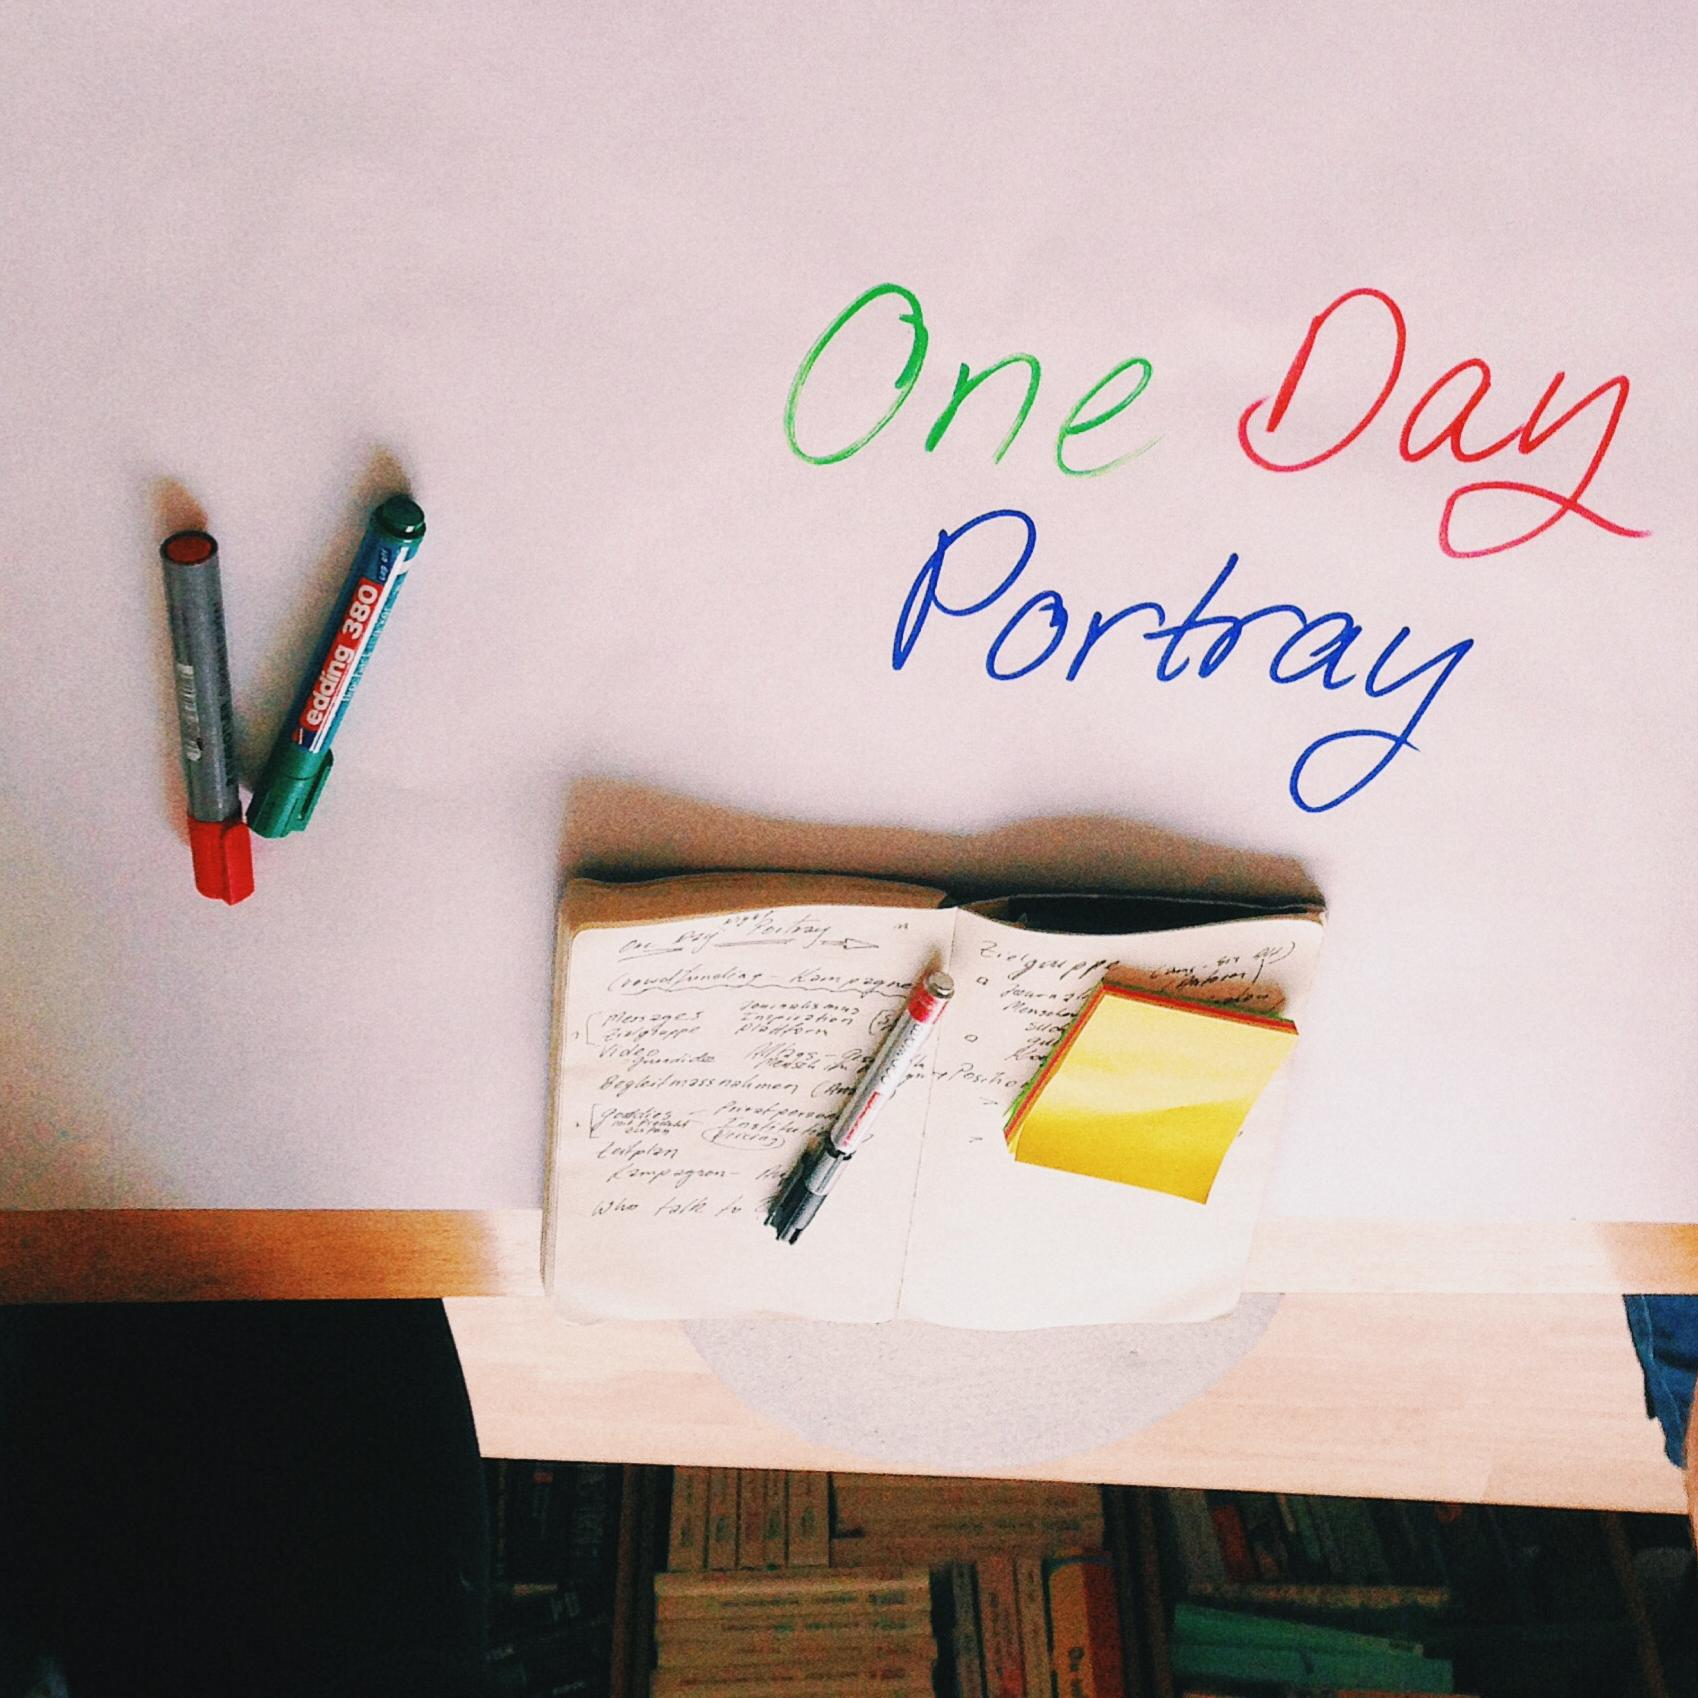 One Day Portray